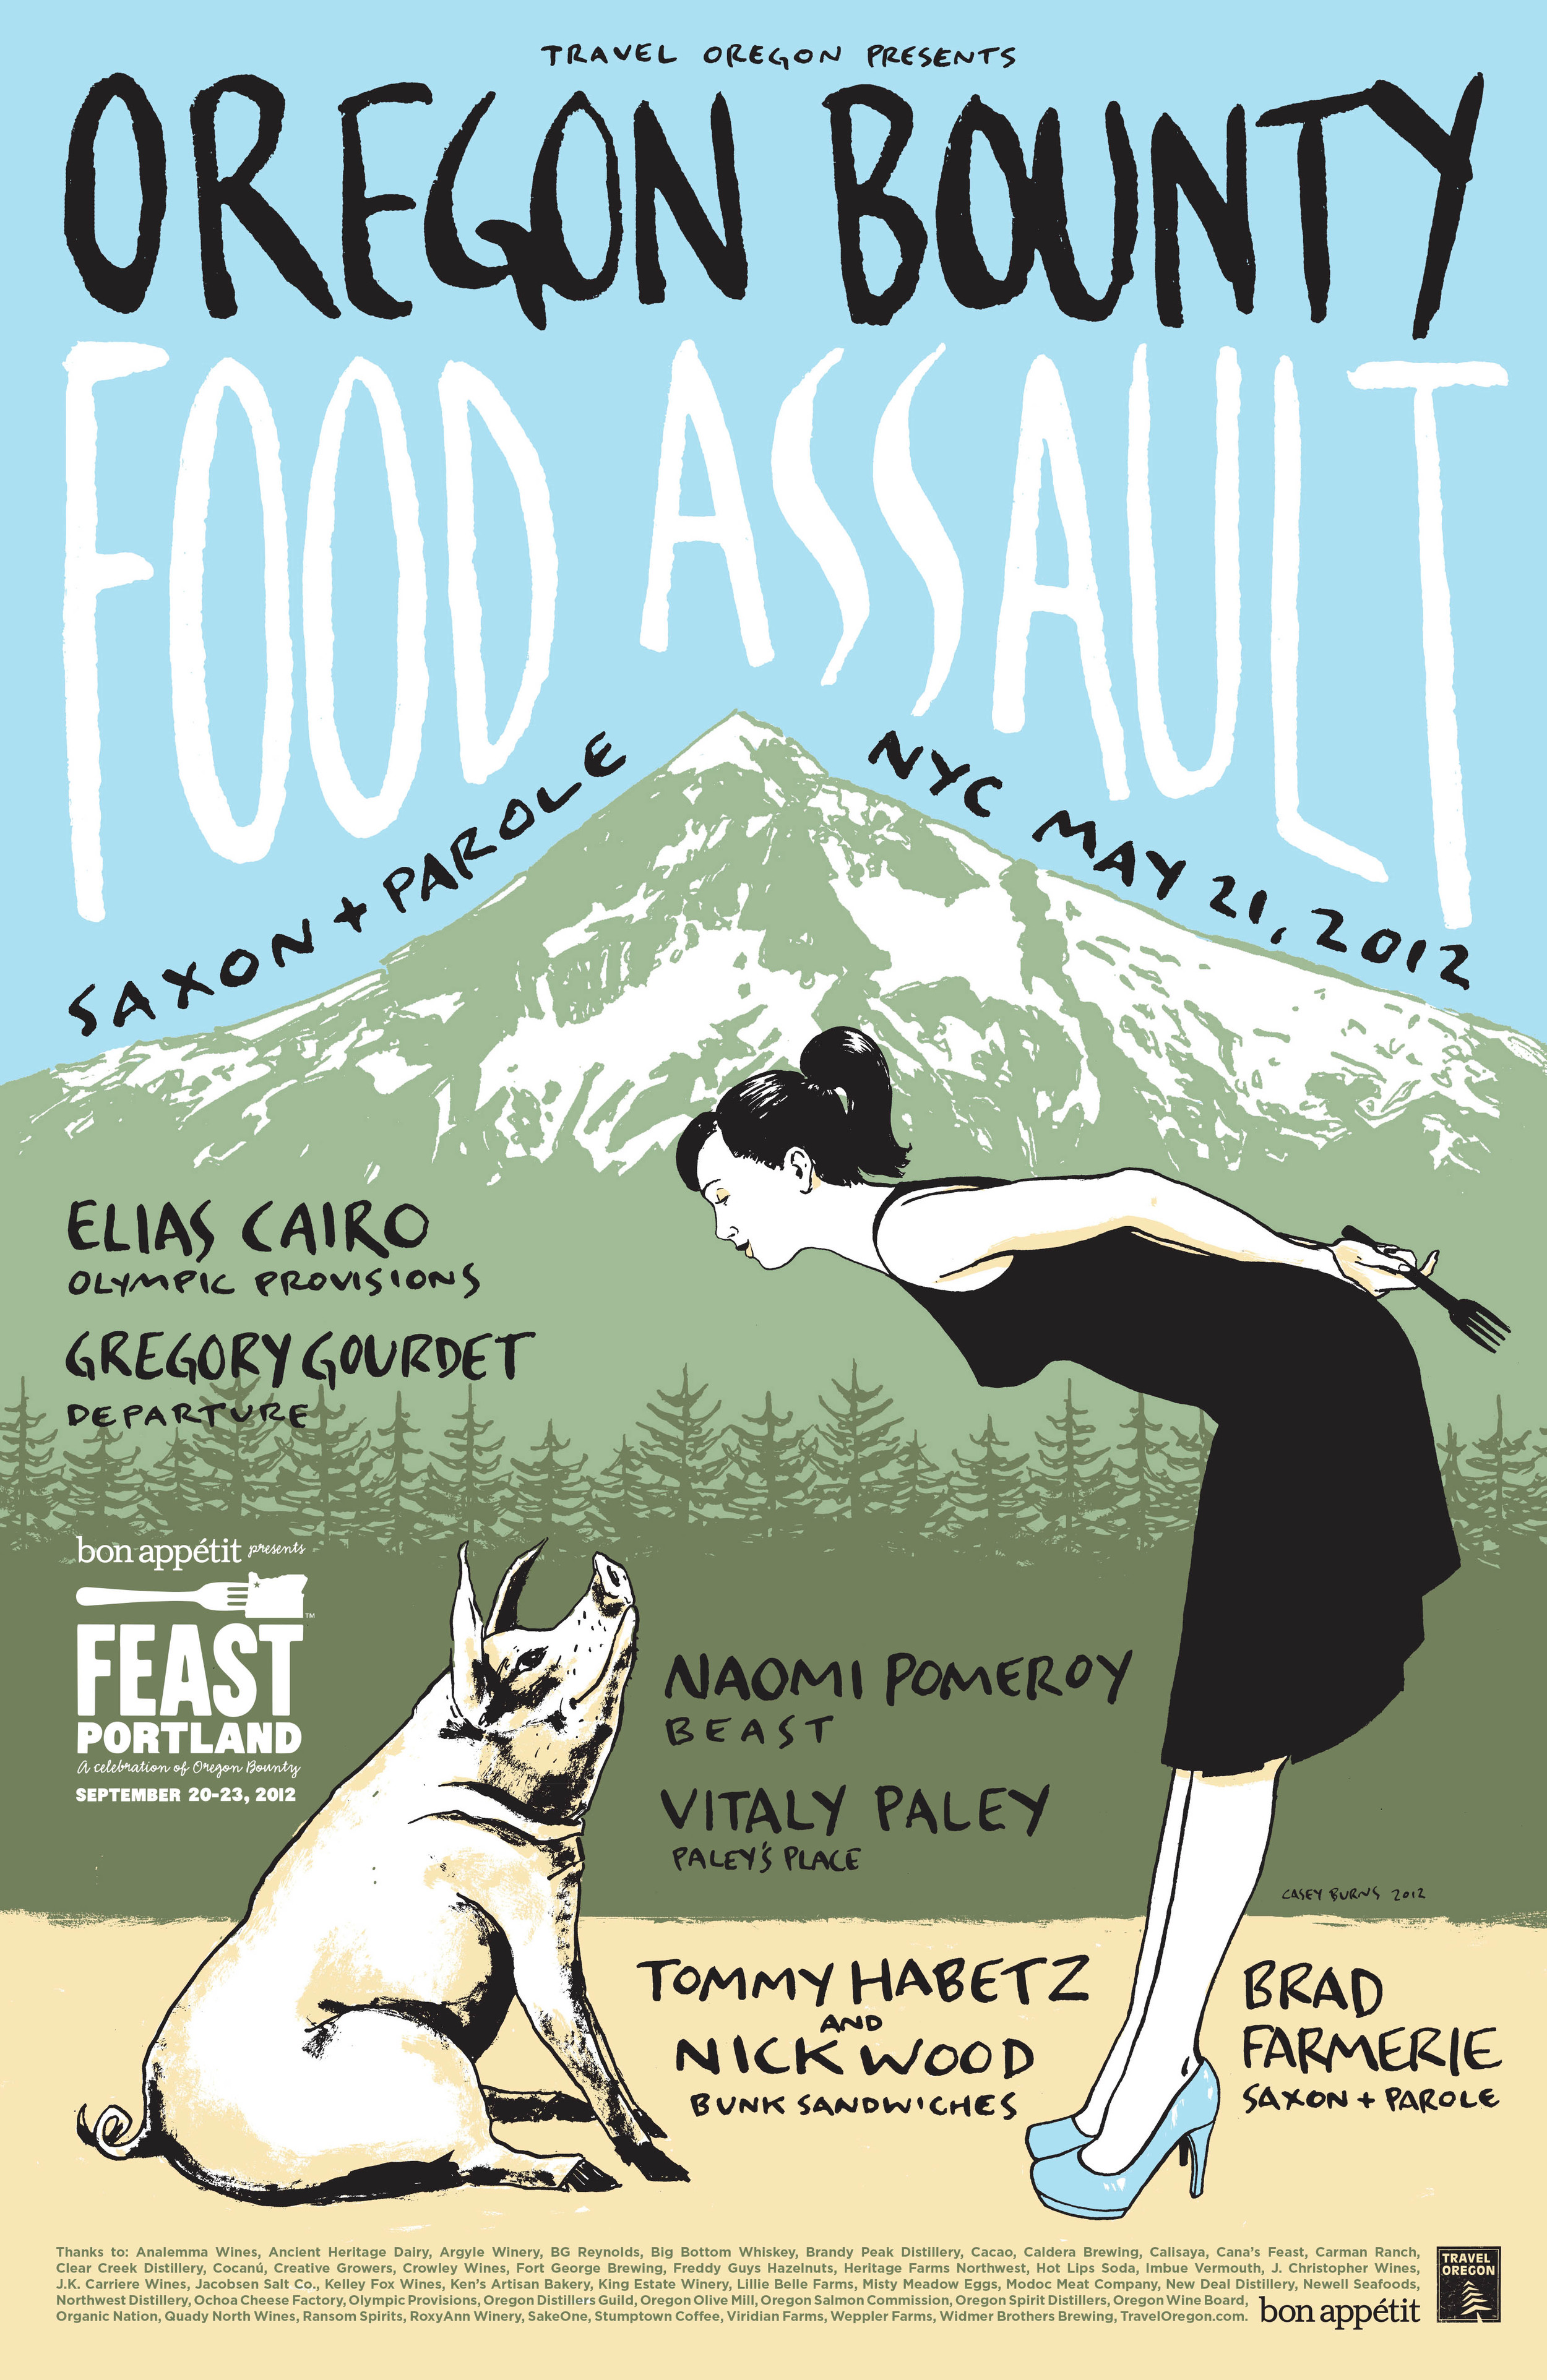 """Sometimes lesser known places have to act big. We created the """"Oregon Bounty Food Assault"""" event in NYC to share Oregon's tastiest with 125 top food-world influencers."""